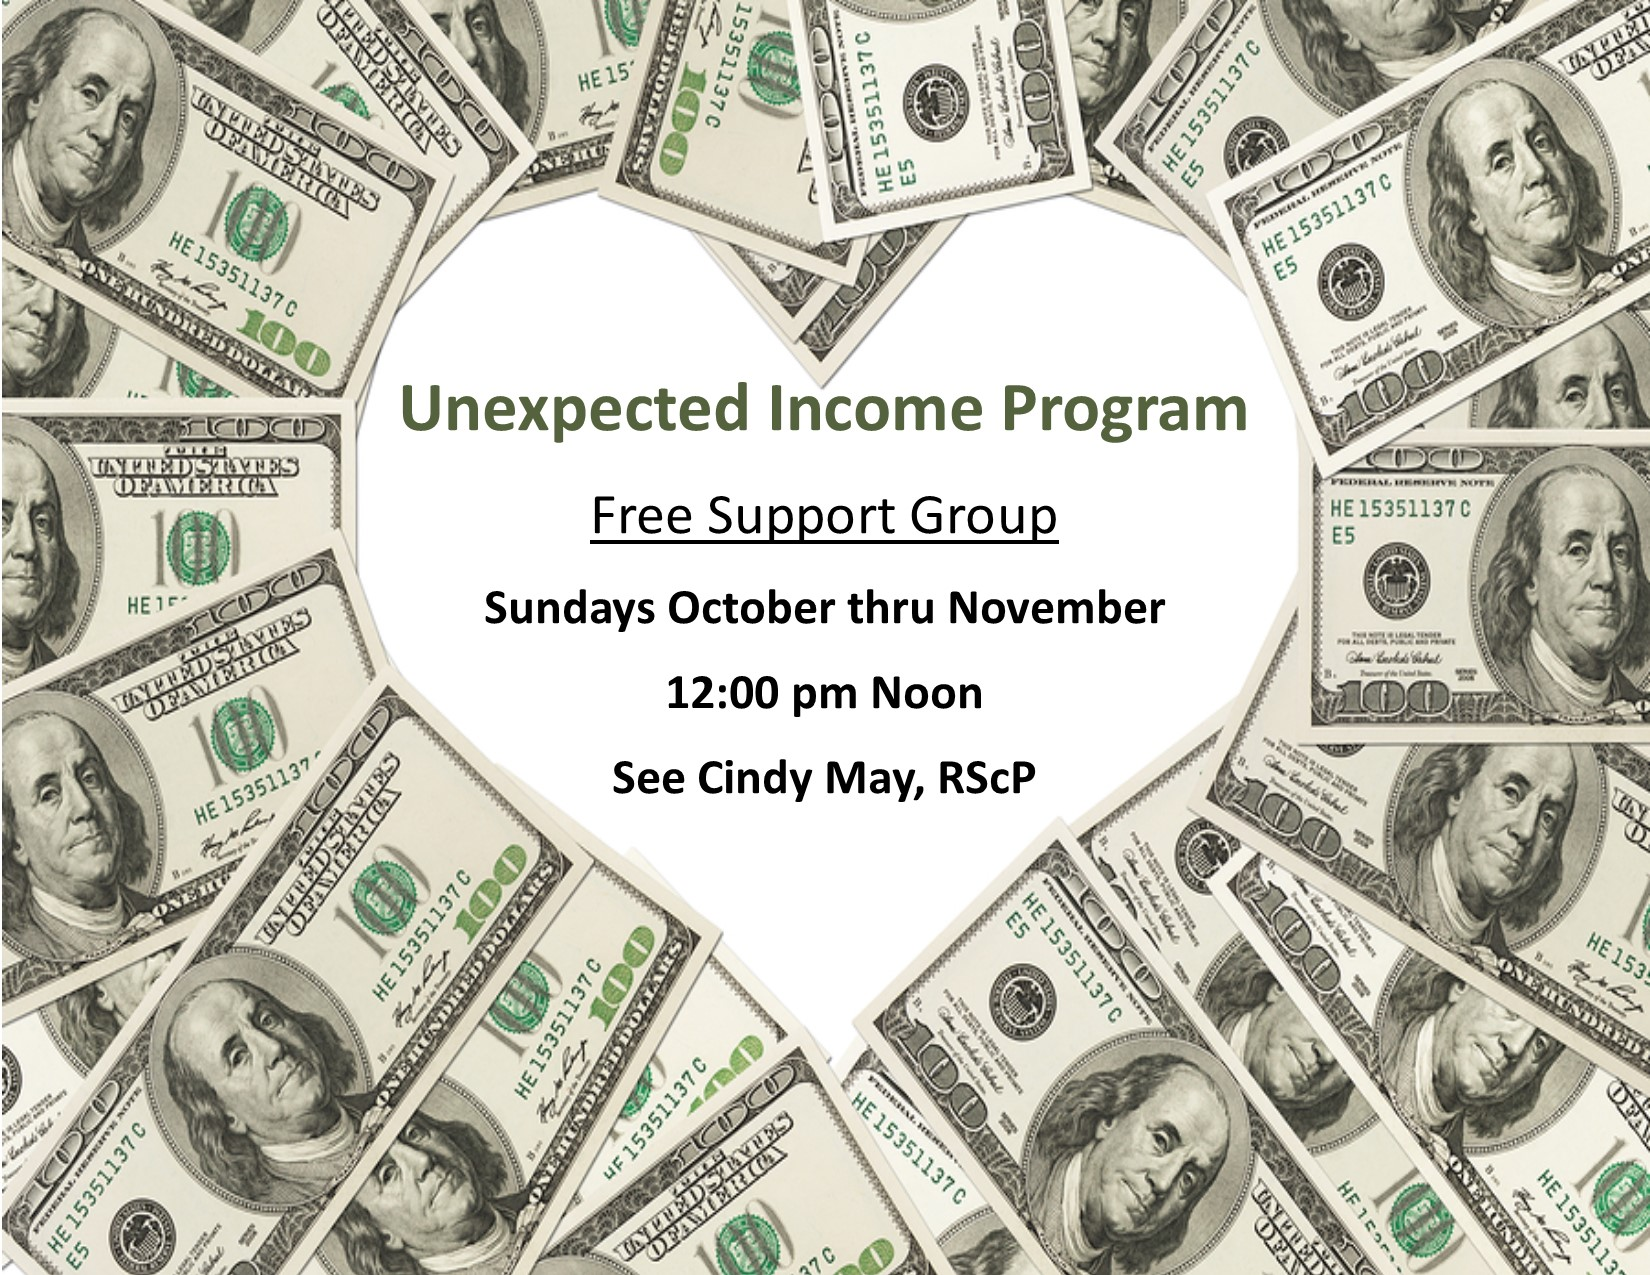 Unexpexted income 2